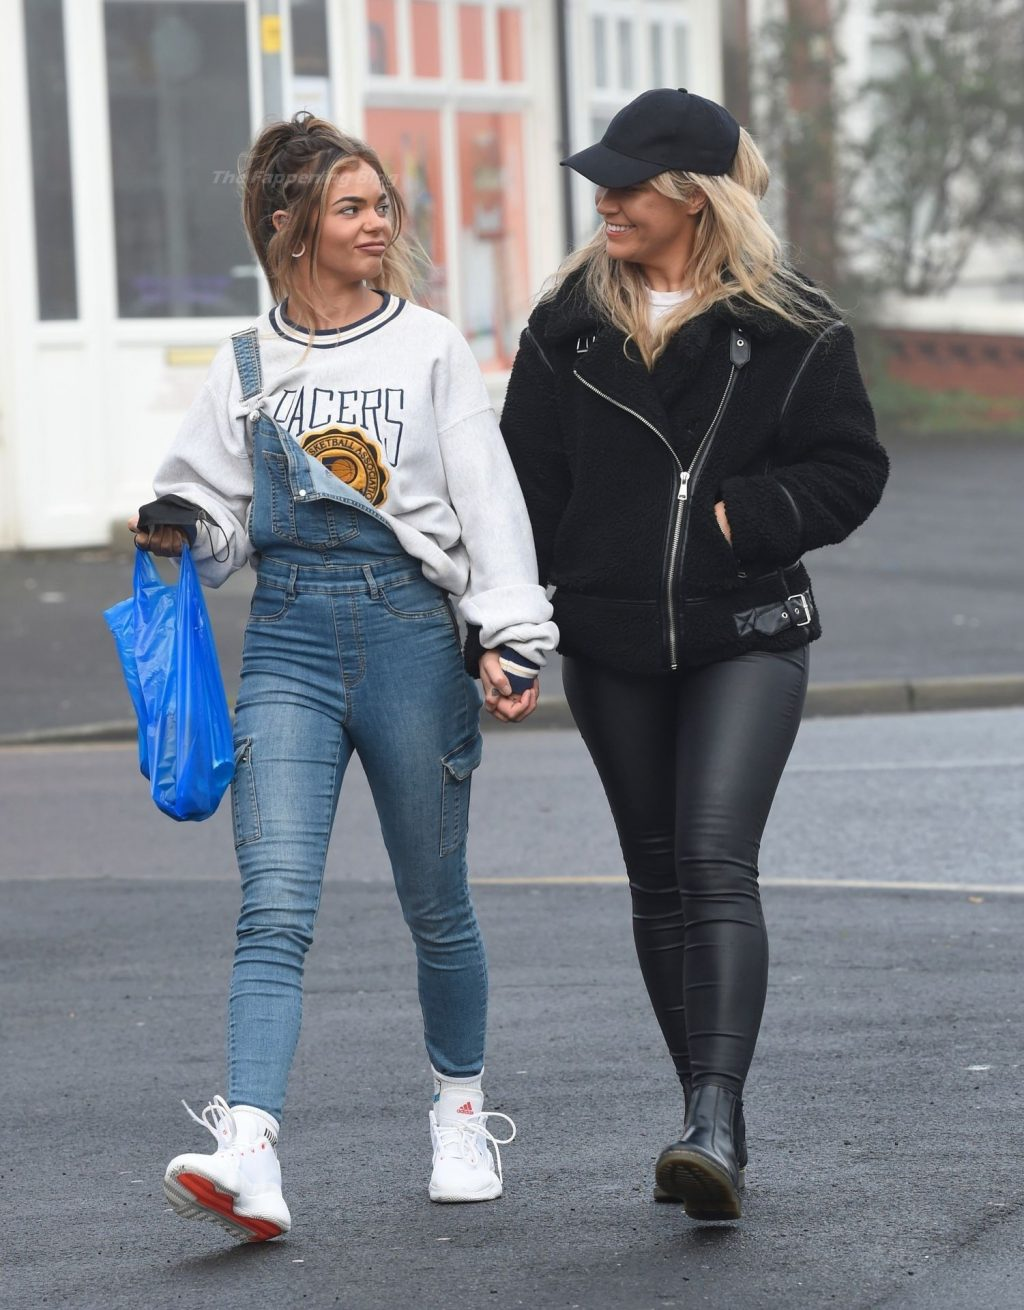 Lesbians Sarah Hutchinson & Charlotte Taundry are Seen Kissing in Blackpool (31 Photos)